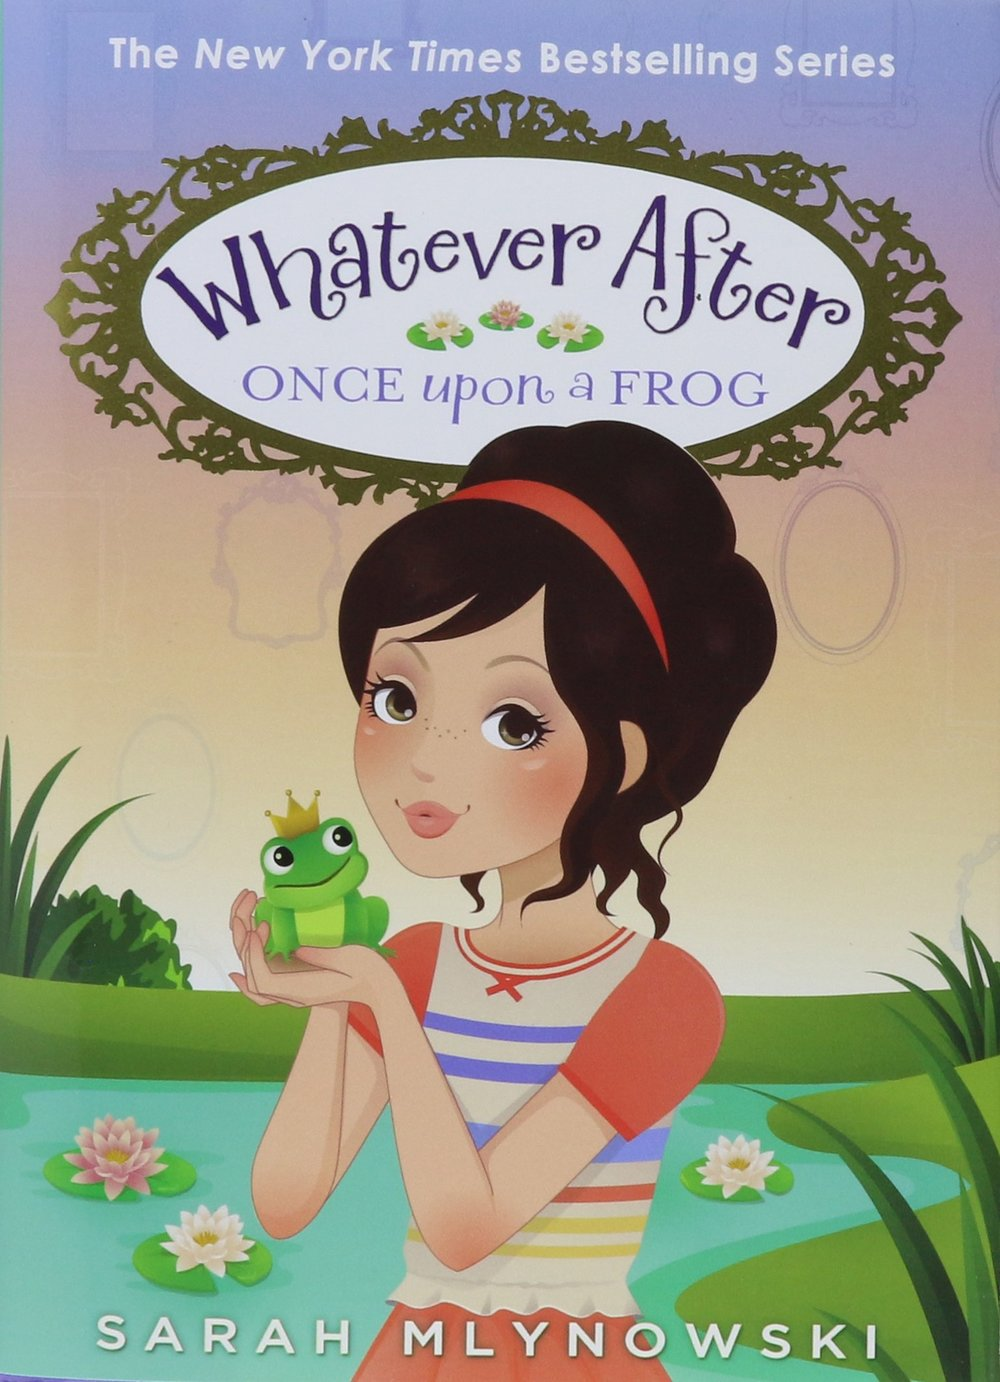 mlynowski-whatever-after-once-upon-frog.jpg